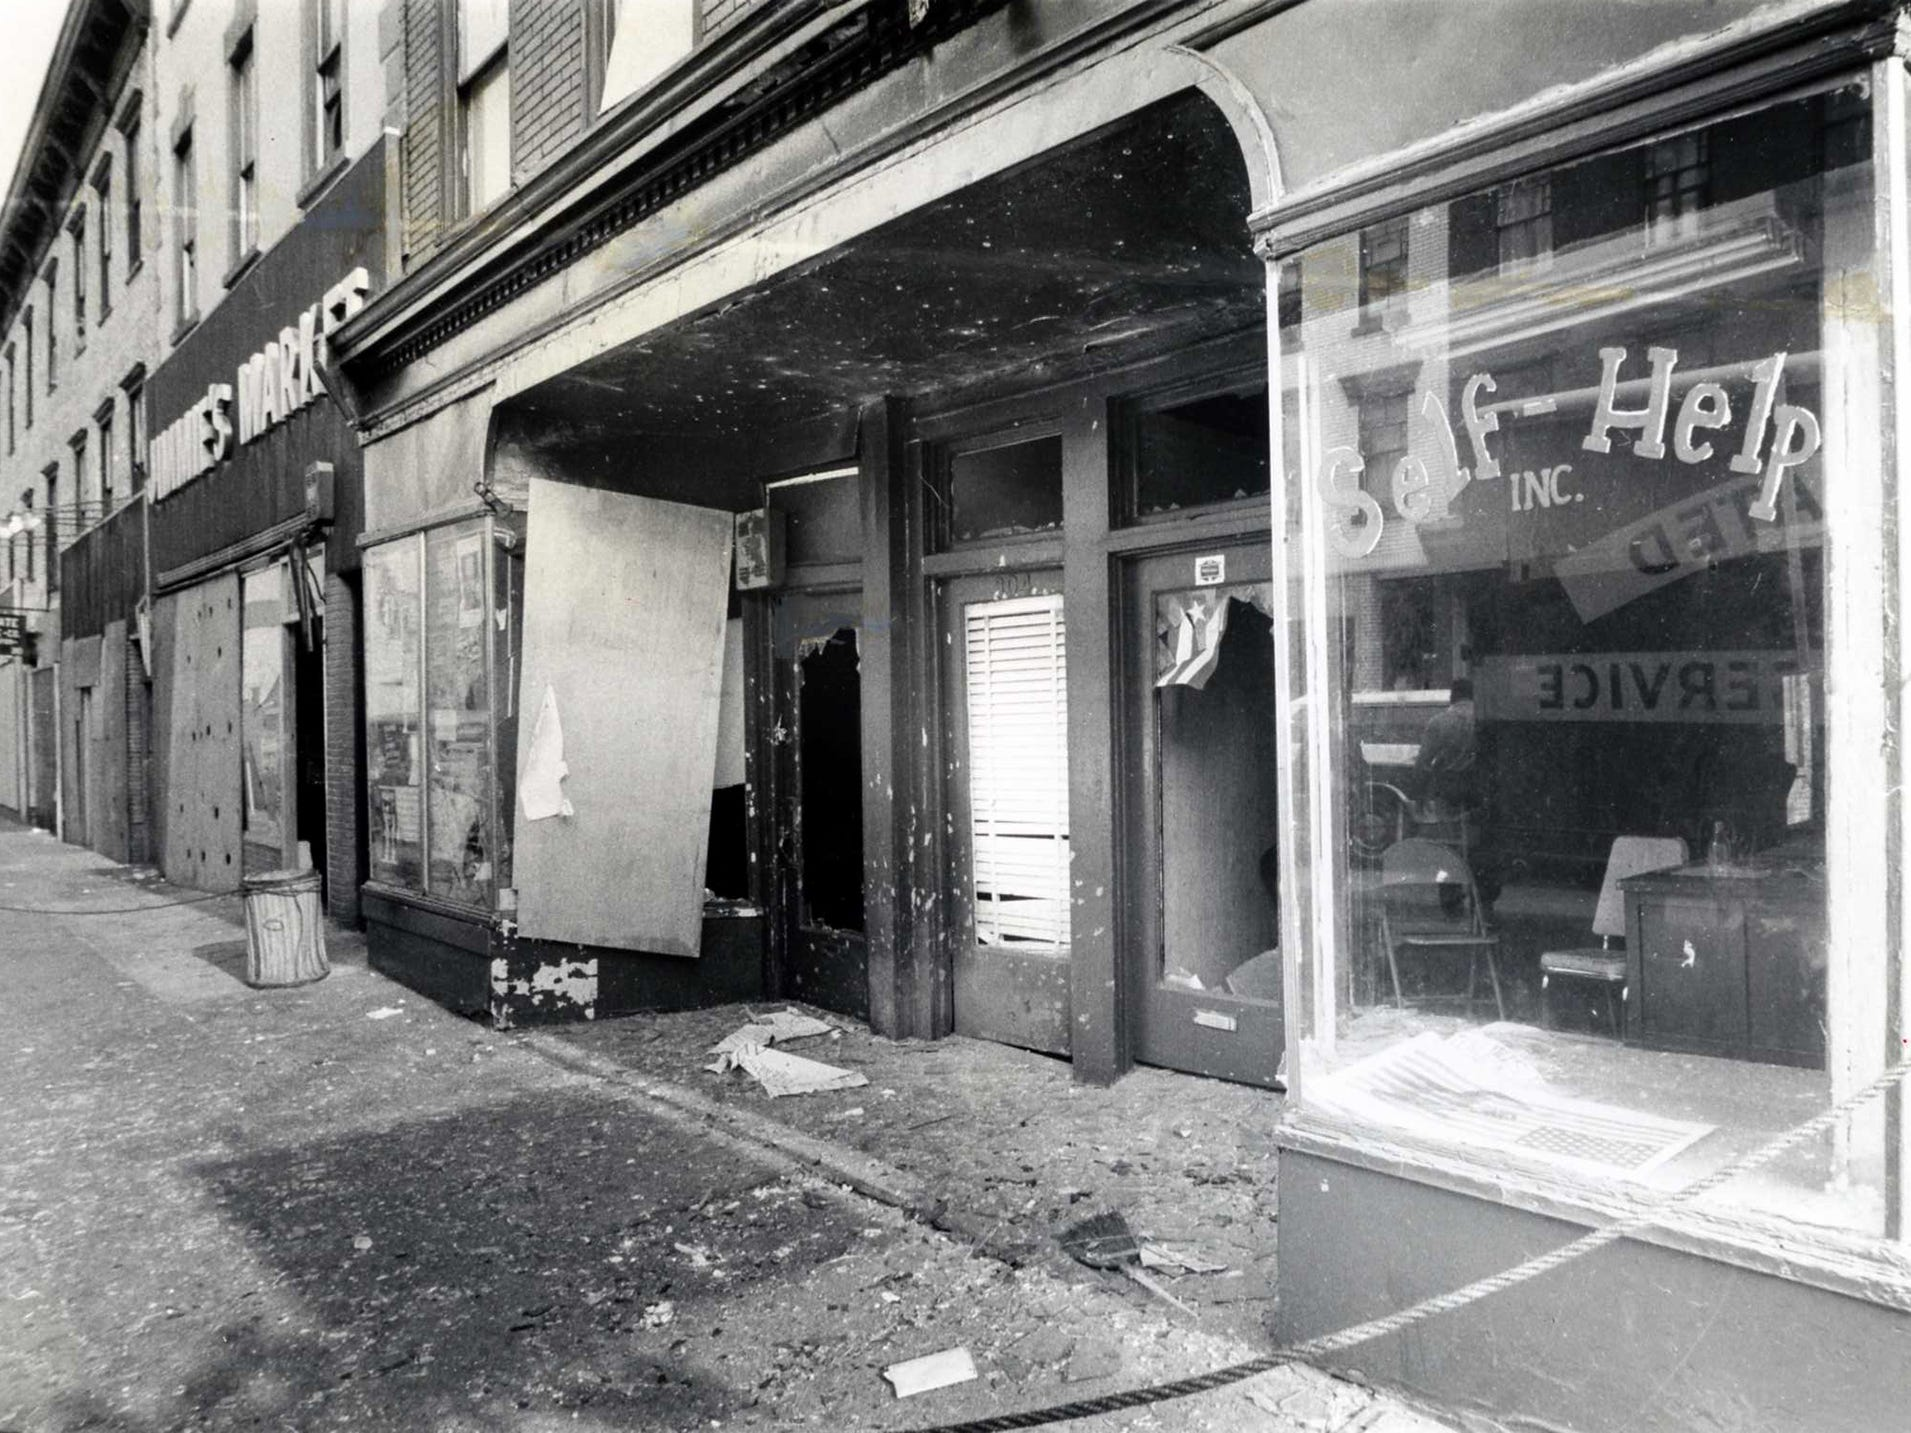 A bombed storefront in September 1971 near 1st and Willow streets.